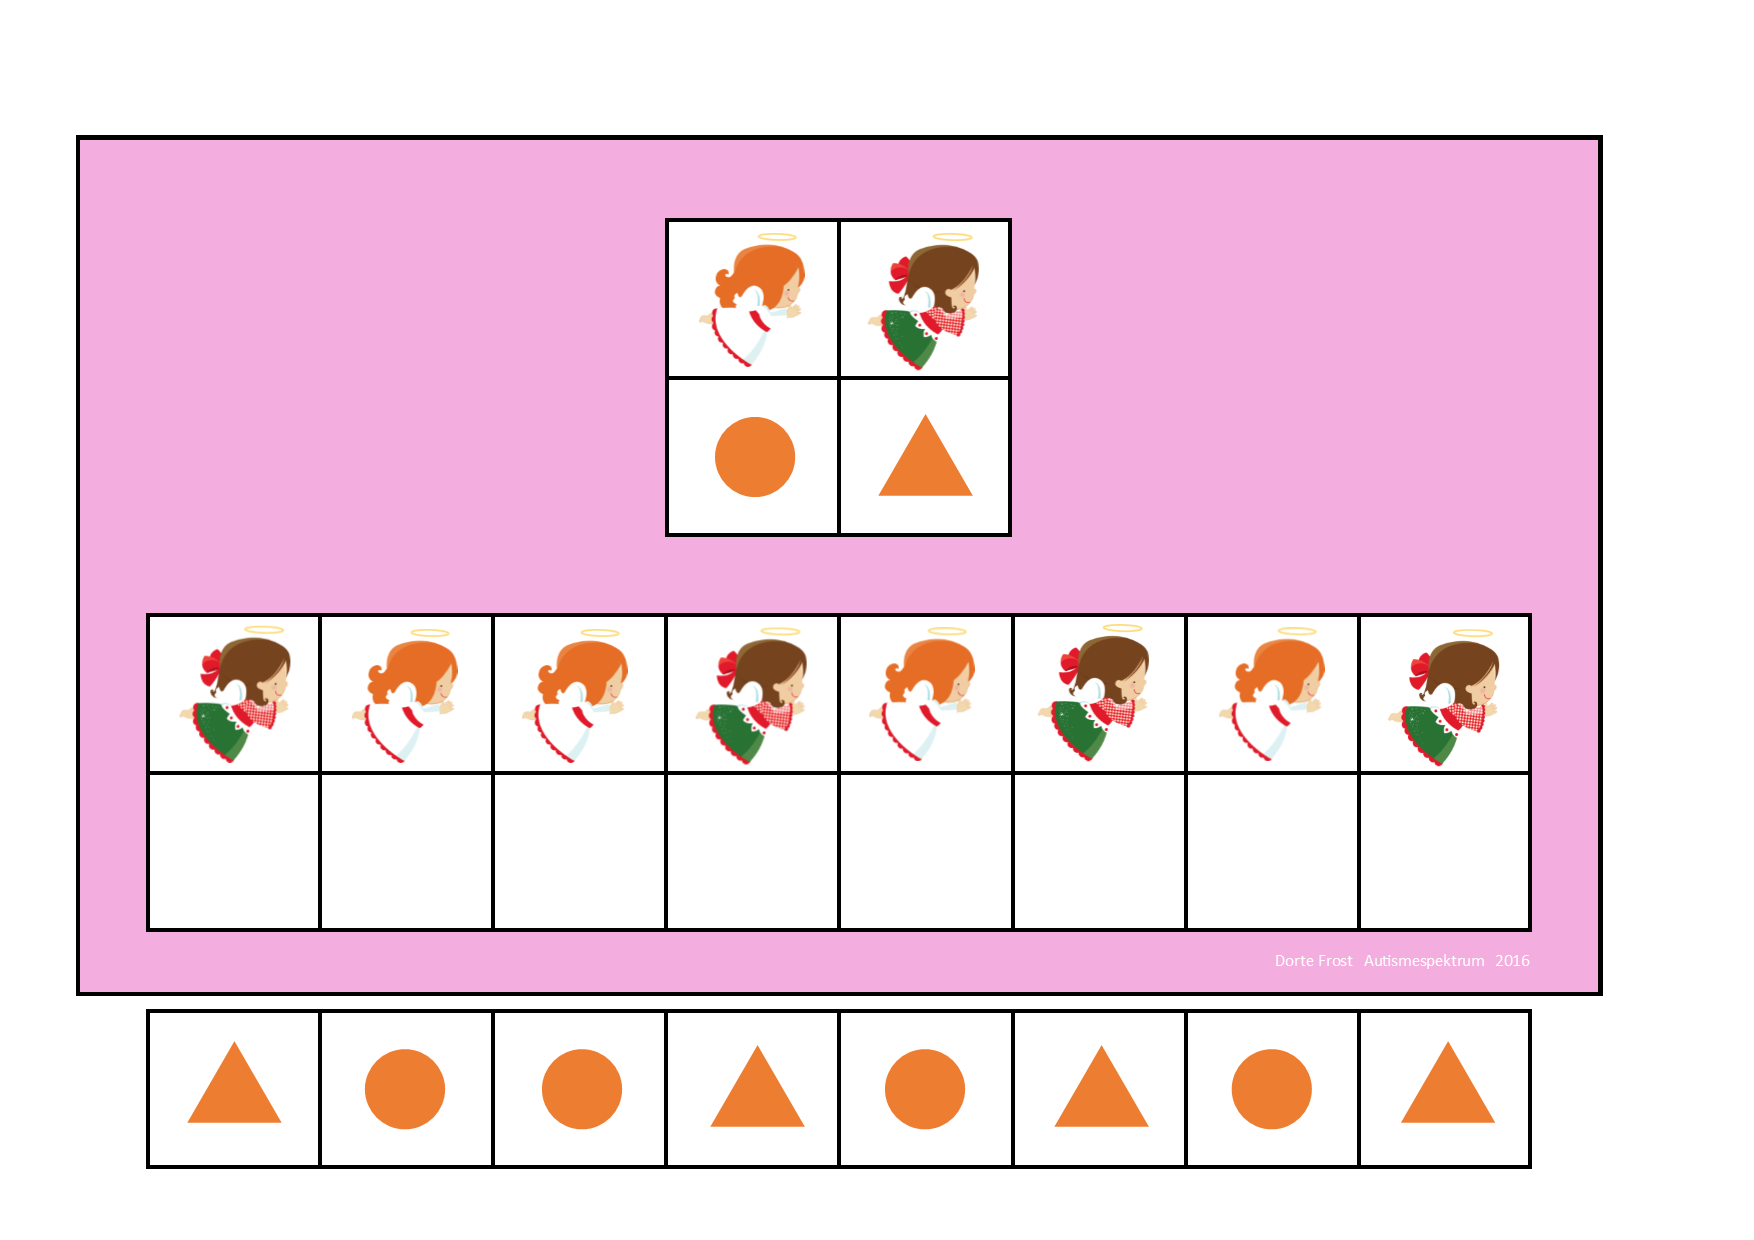 Board And Tiles For The Angel Visual Perception Game By Autismespektrum